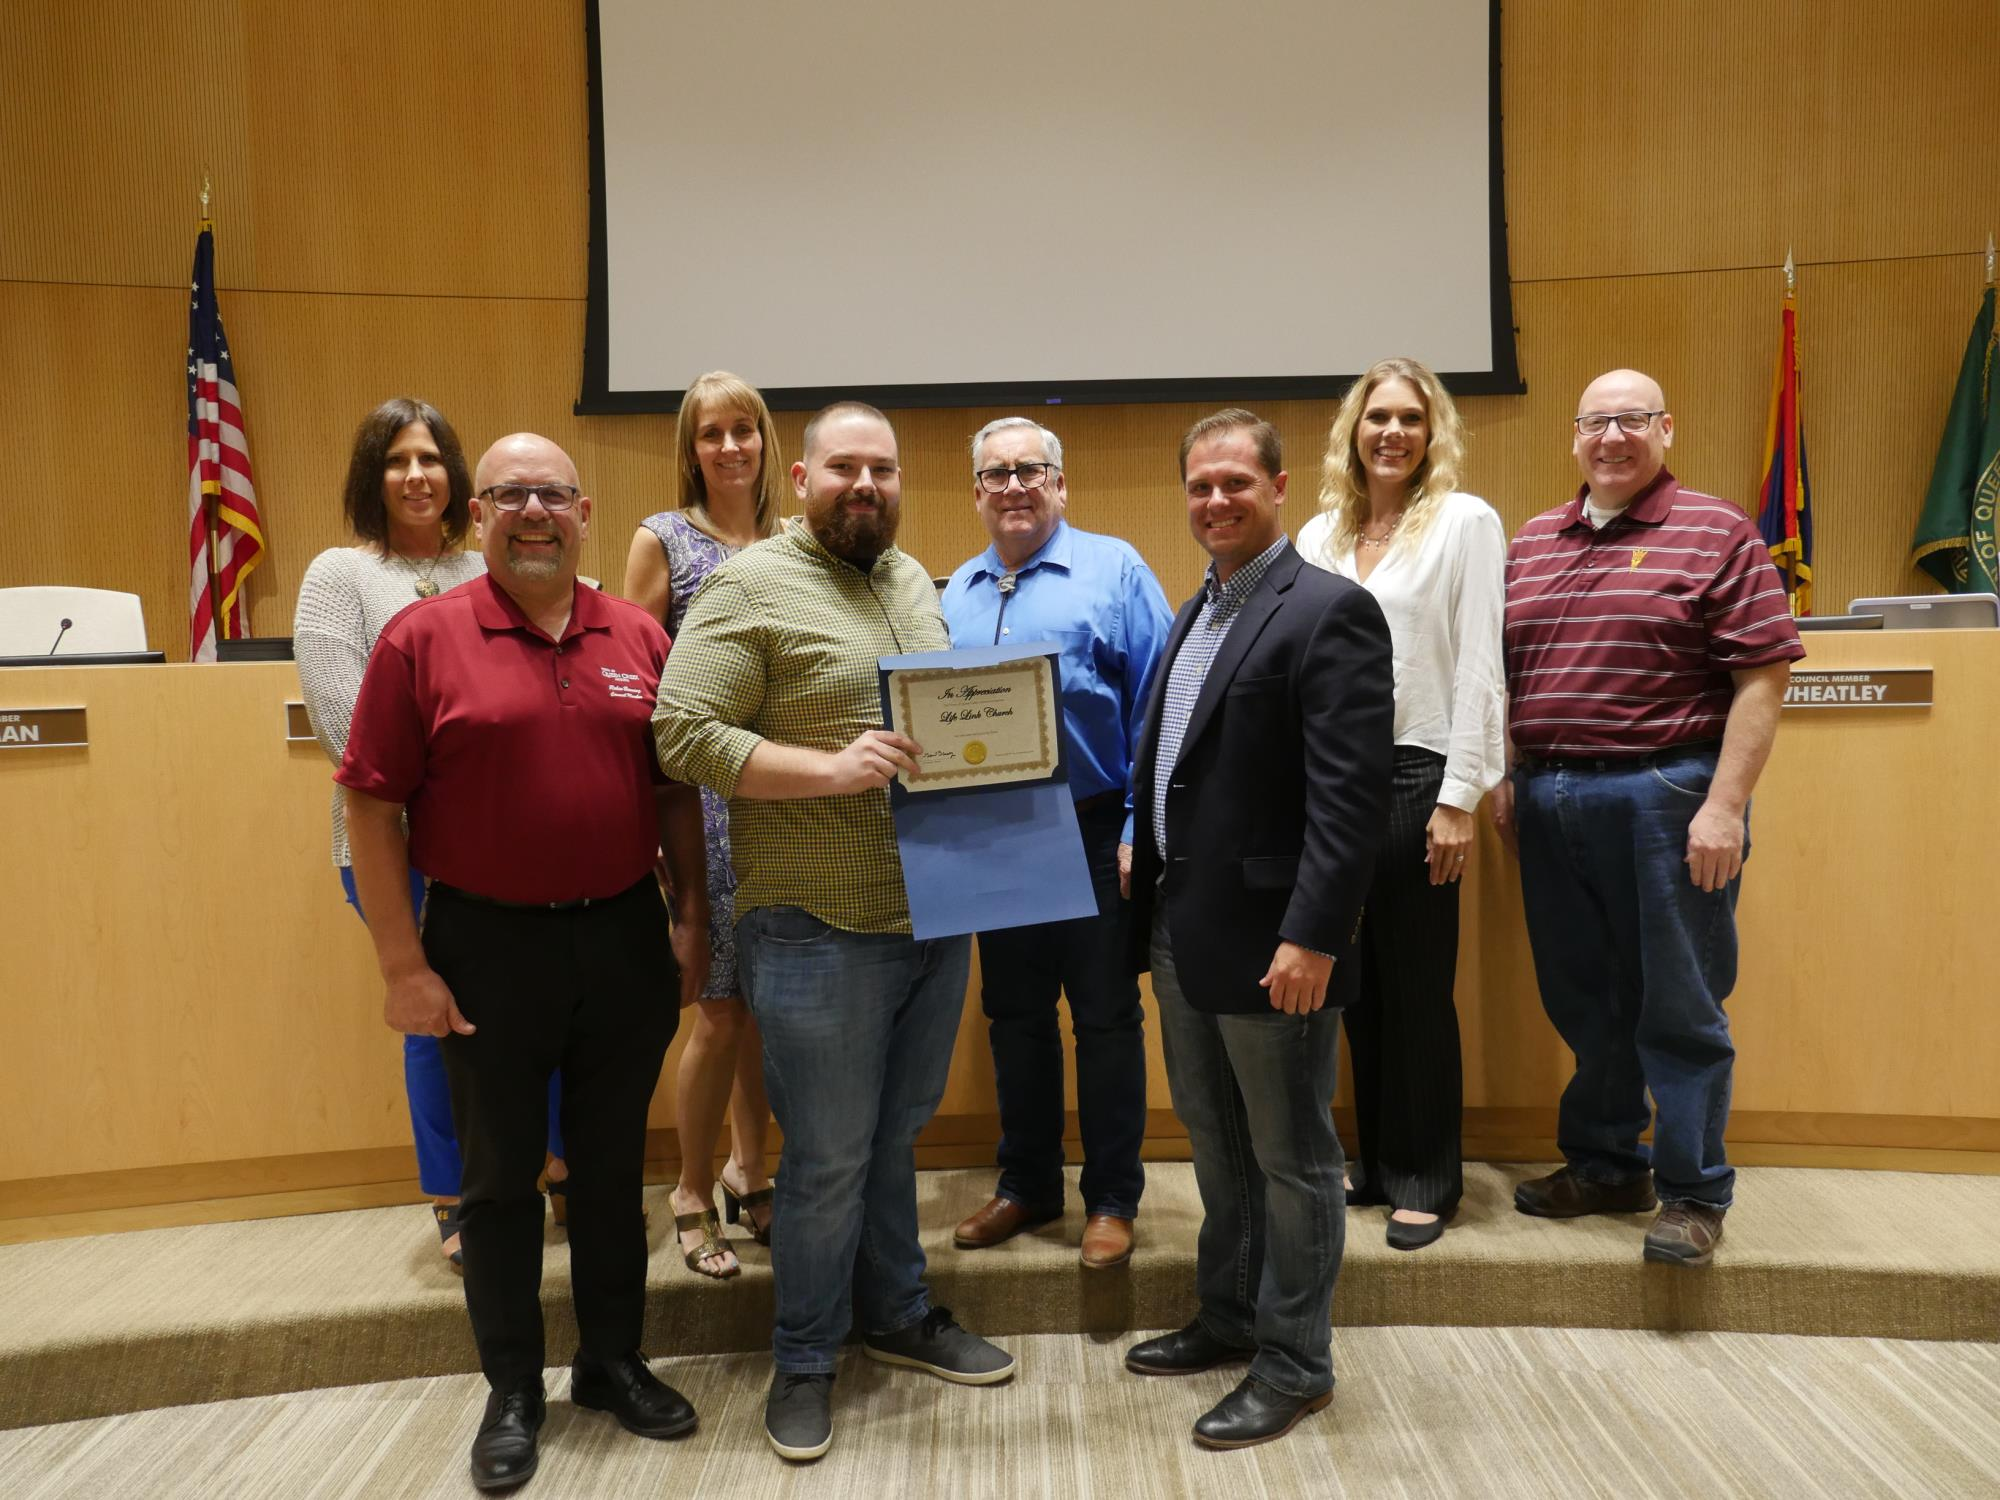 Mayor Barney and the Town Council with a representative from Life Link Church at the Town Council Meeting on September 5